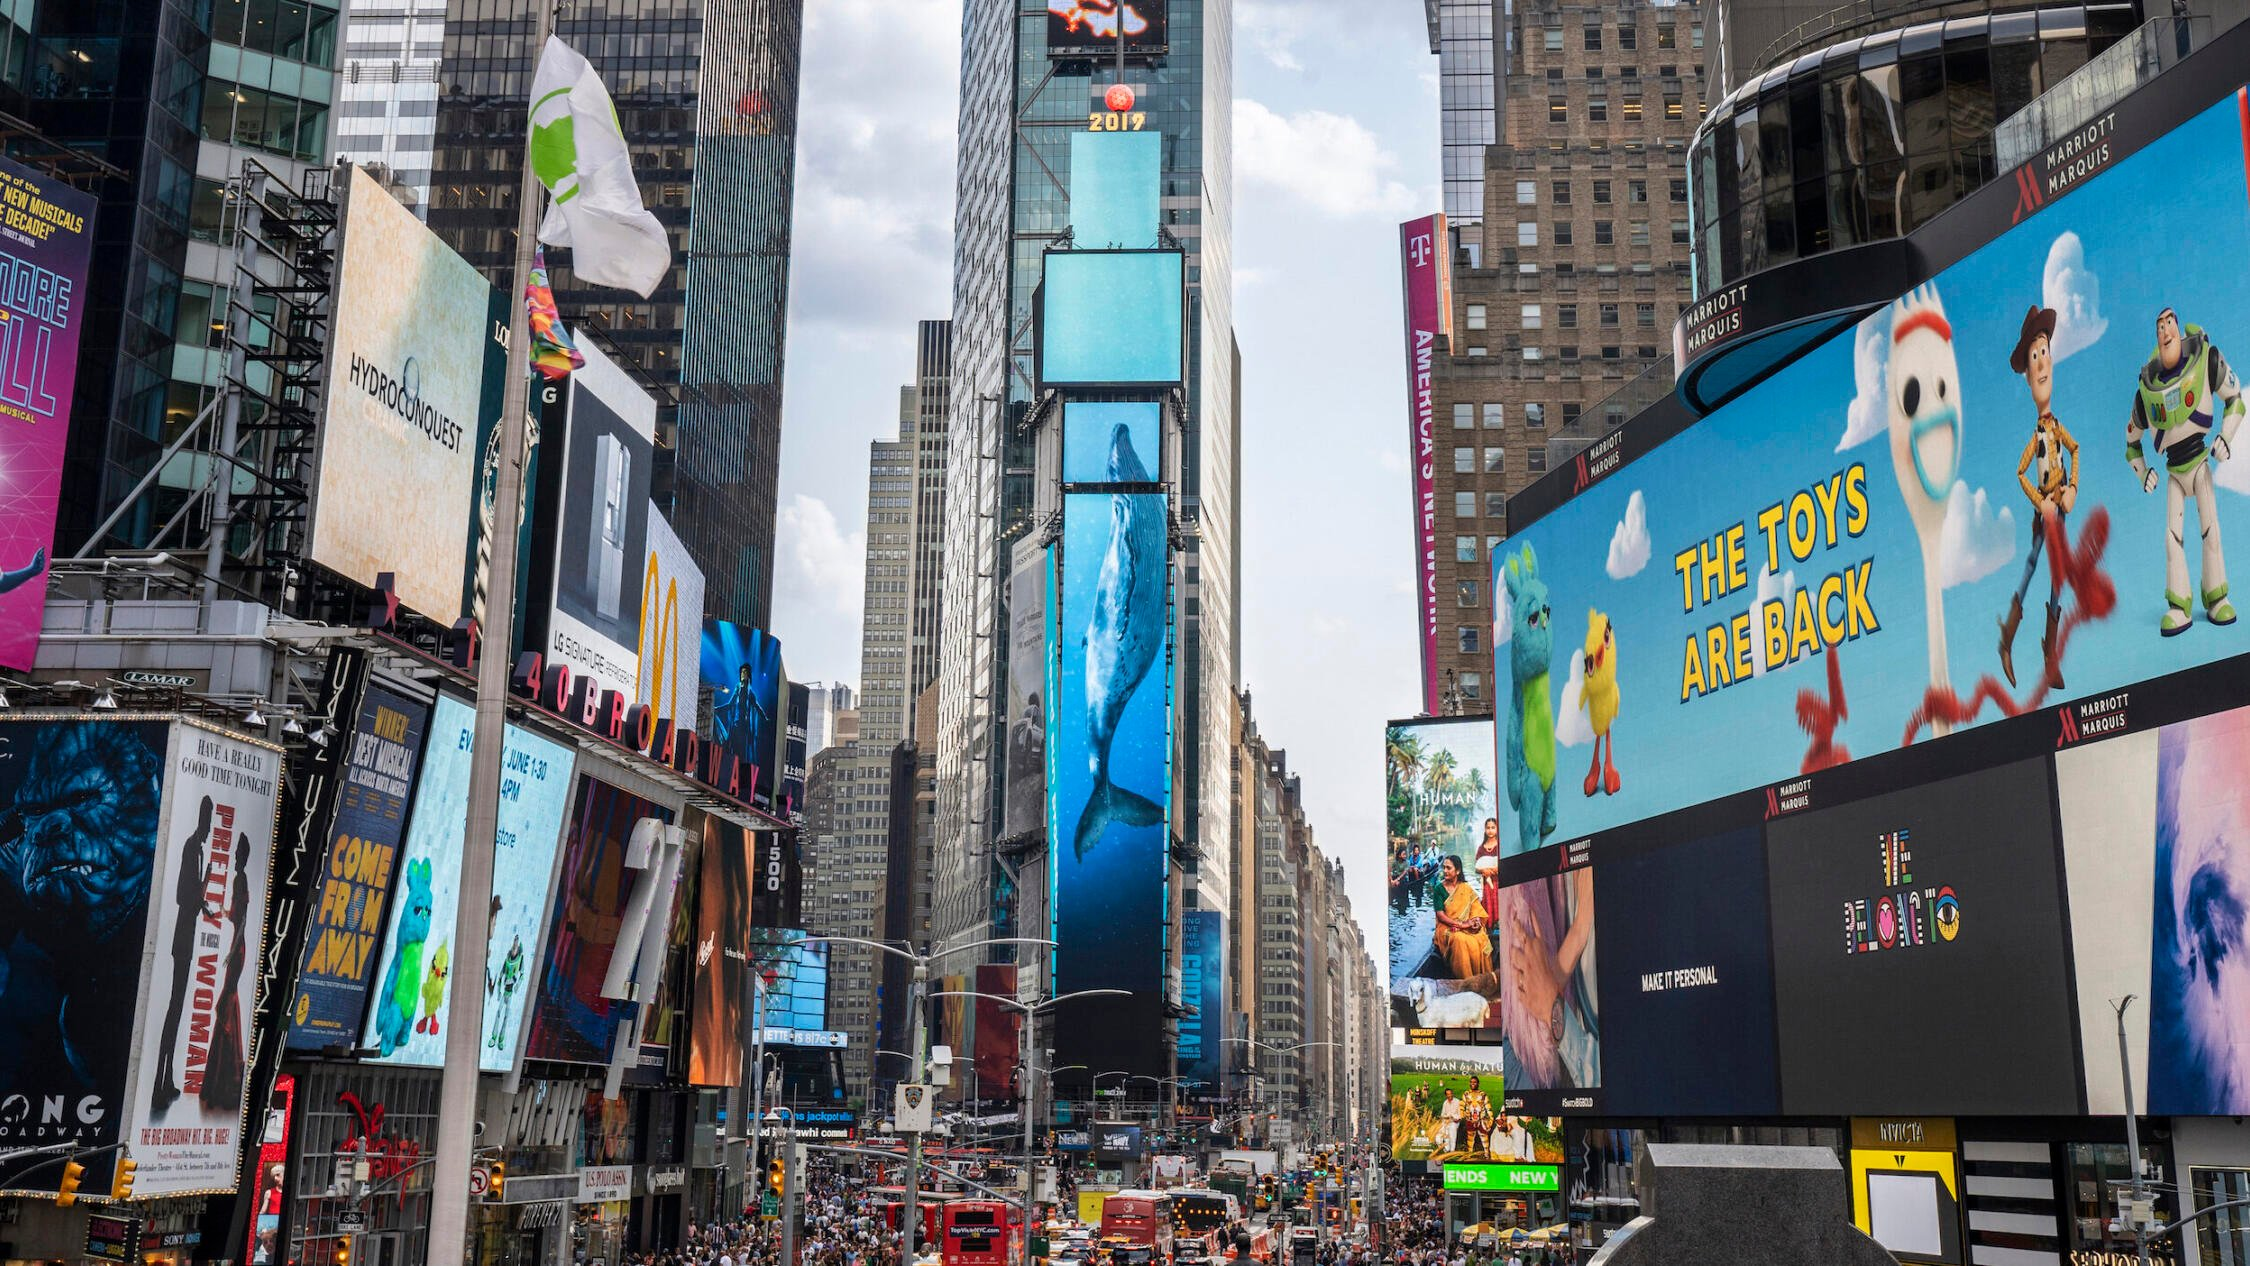 View of Times Square with One Times Square in the center. Massive animated whales are suspended on the large digital screens on One Times Square.